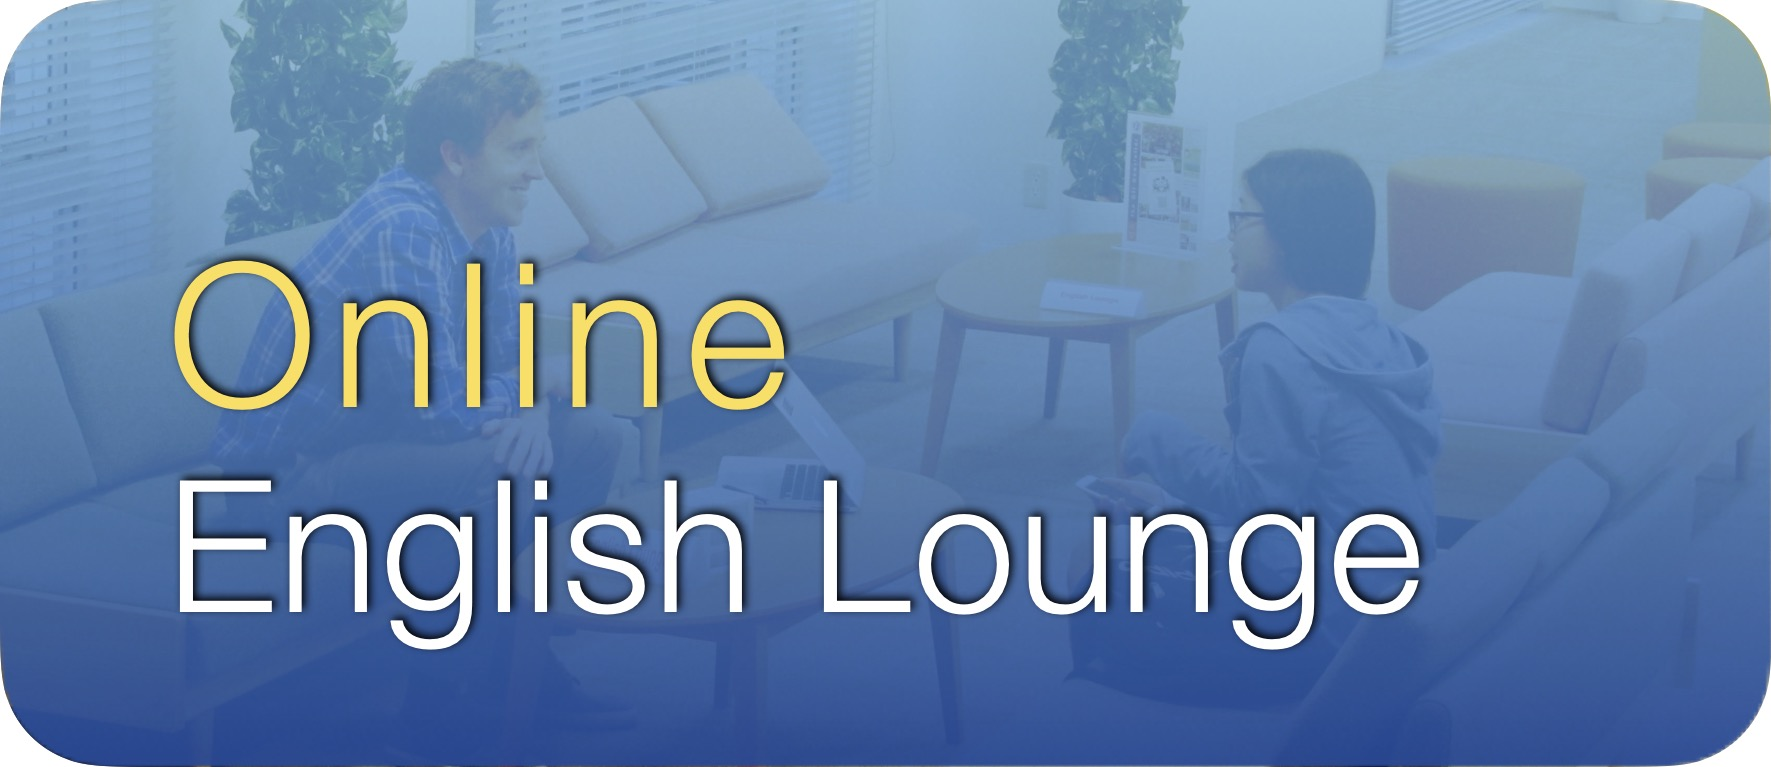 Online English Lounge Button 2020